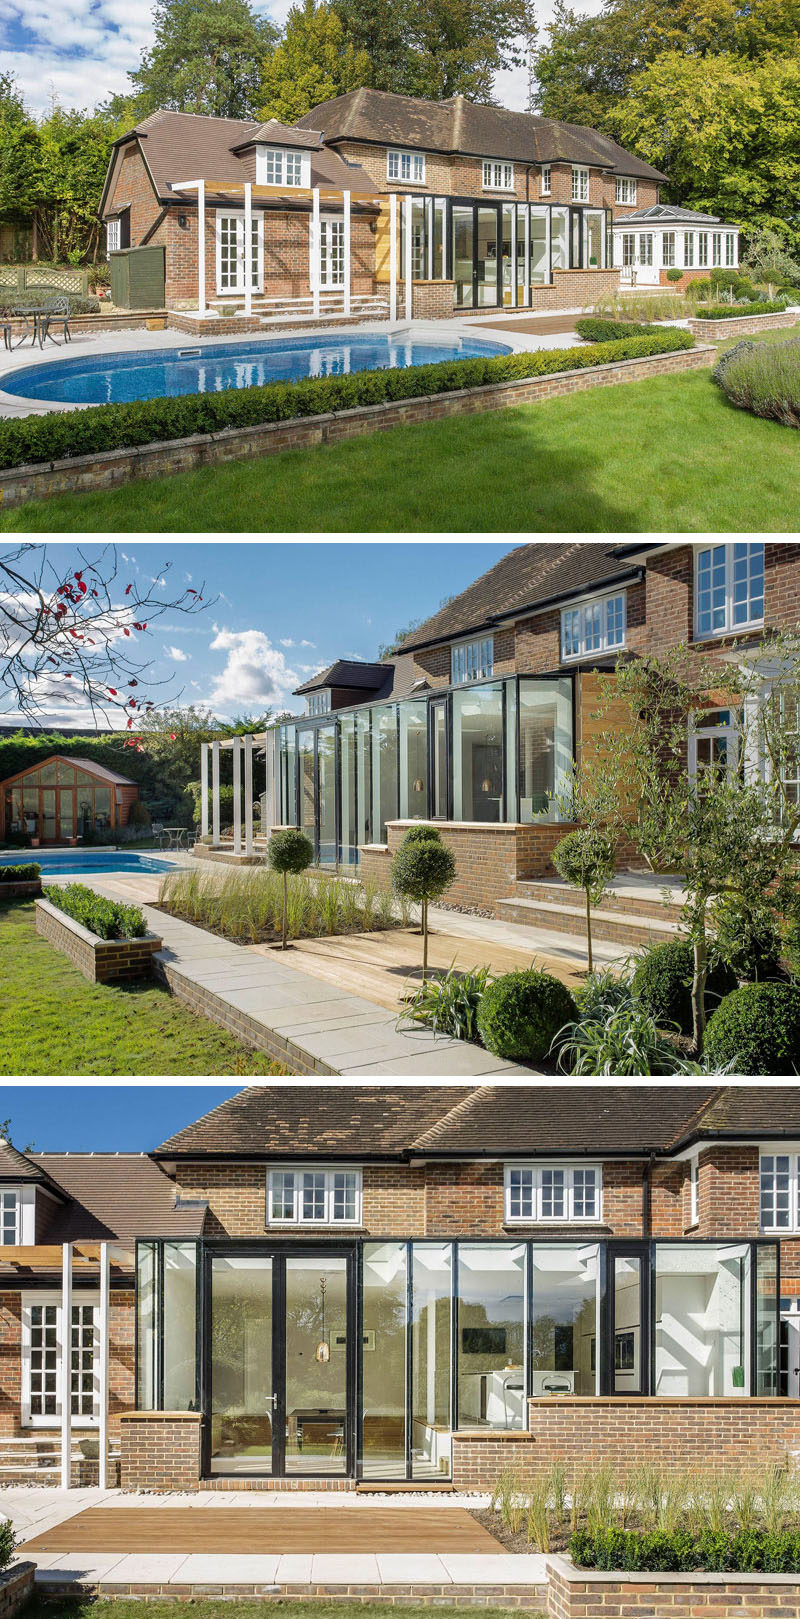 14 Examples Of British Houses With Contemporary Extensions // This large home got a bright extension that features lots of windows to brighten up the interior and help make it feel more connected to what's going on outside.